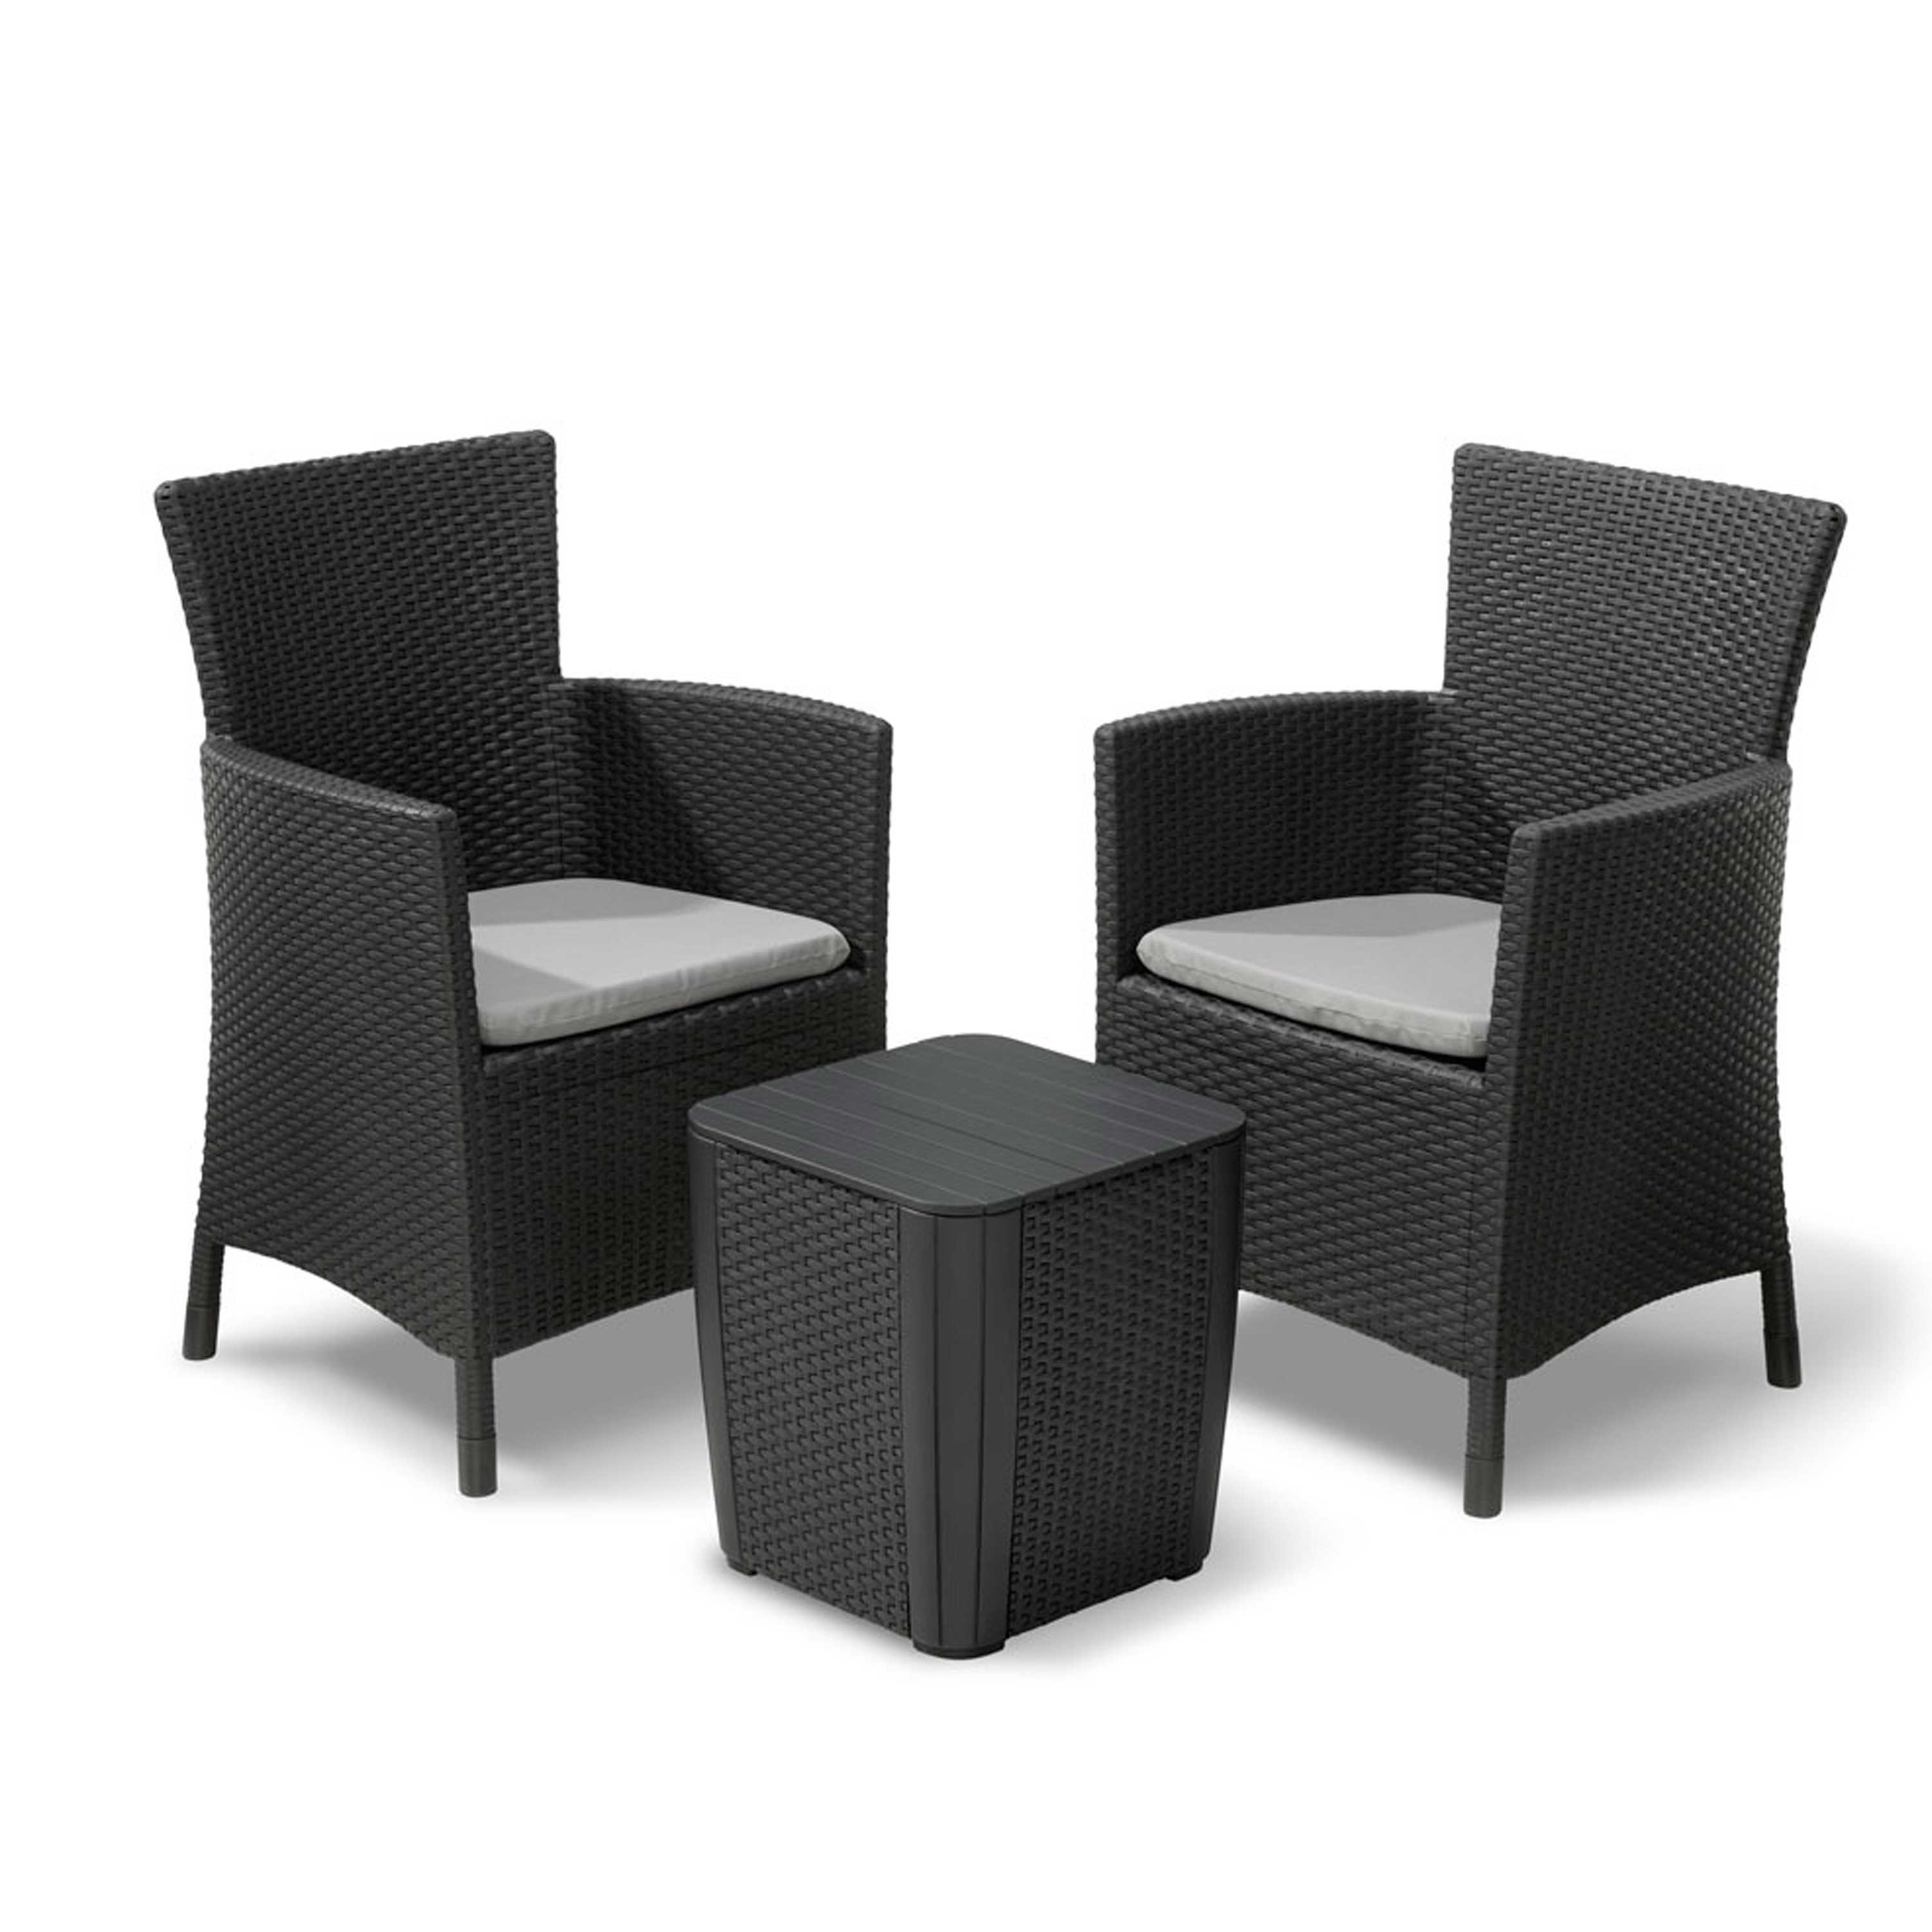 Gardens and Homes Direct Allibert Iowa Two Seater Bistro Set